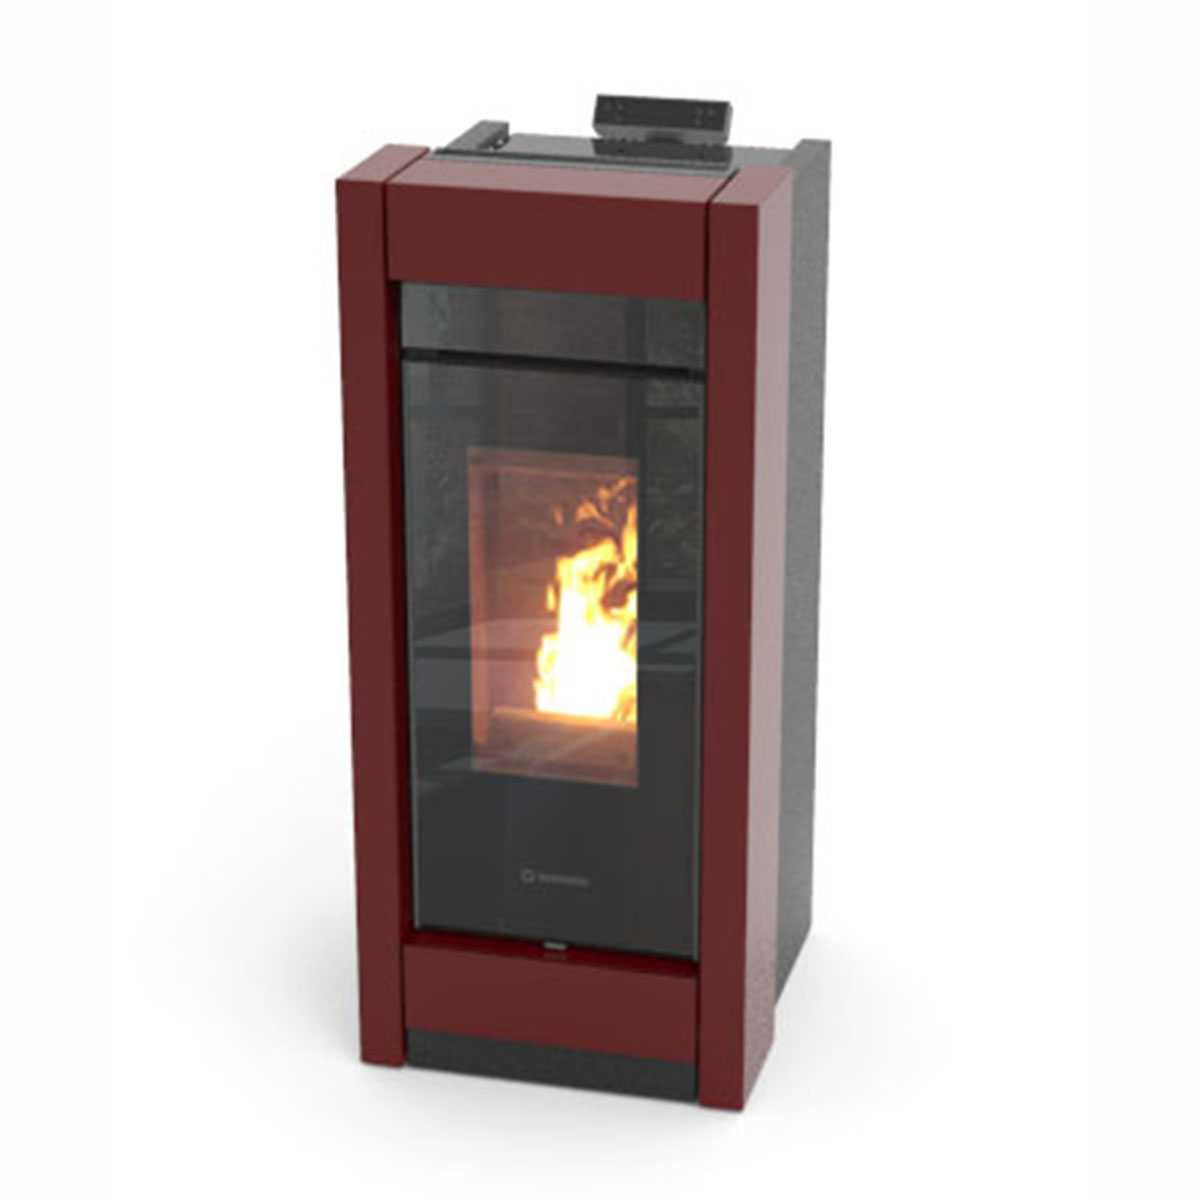 Termostufa a pellet bordeaux Thermorossi Essenza Idra Metalcolor 13,50 kW